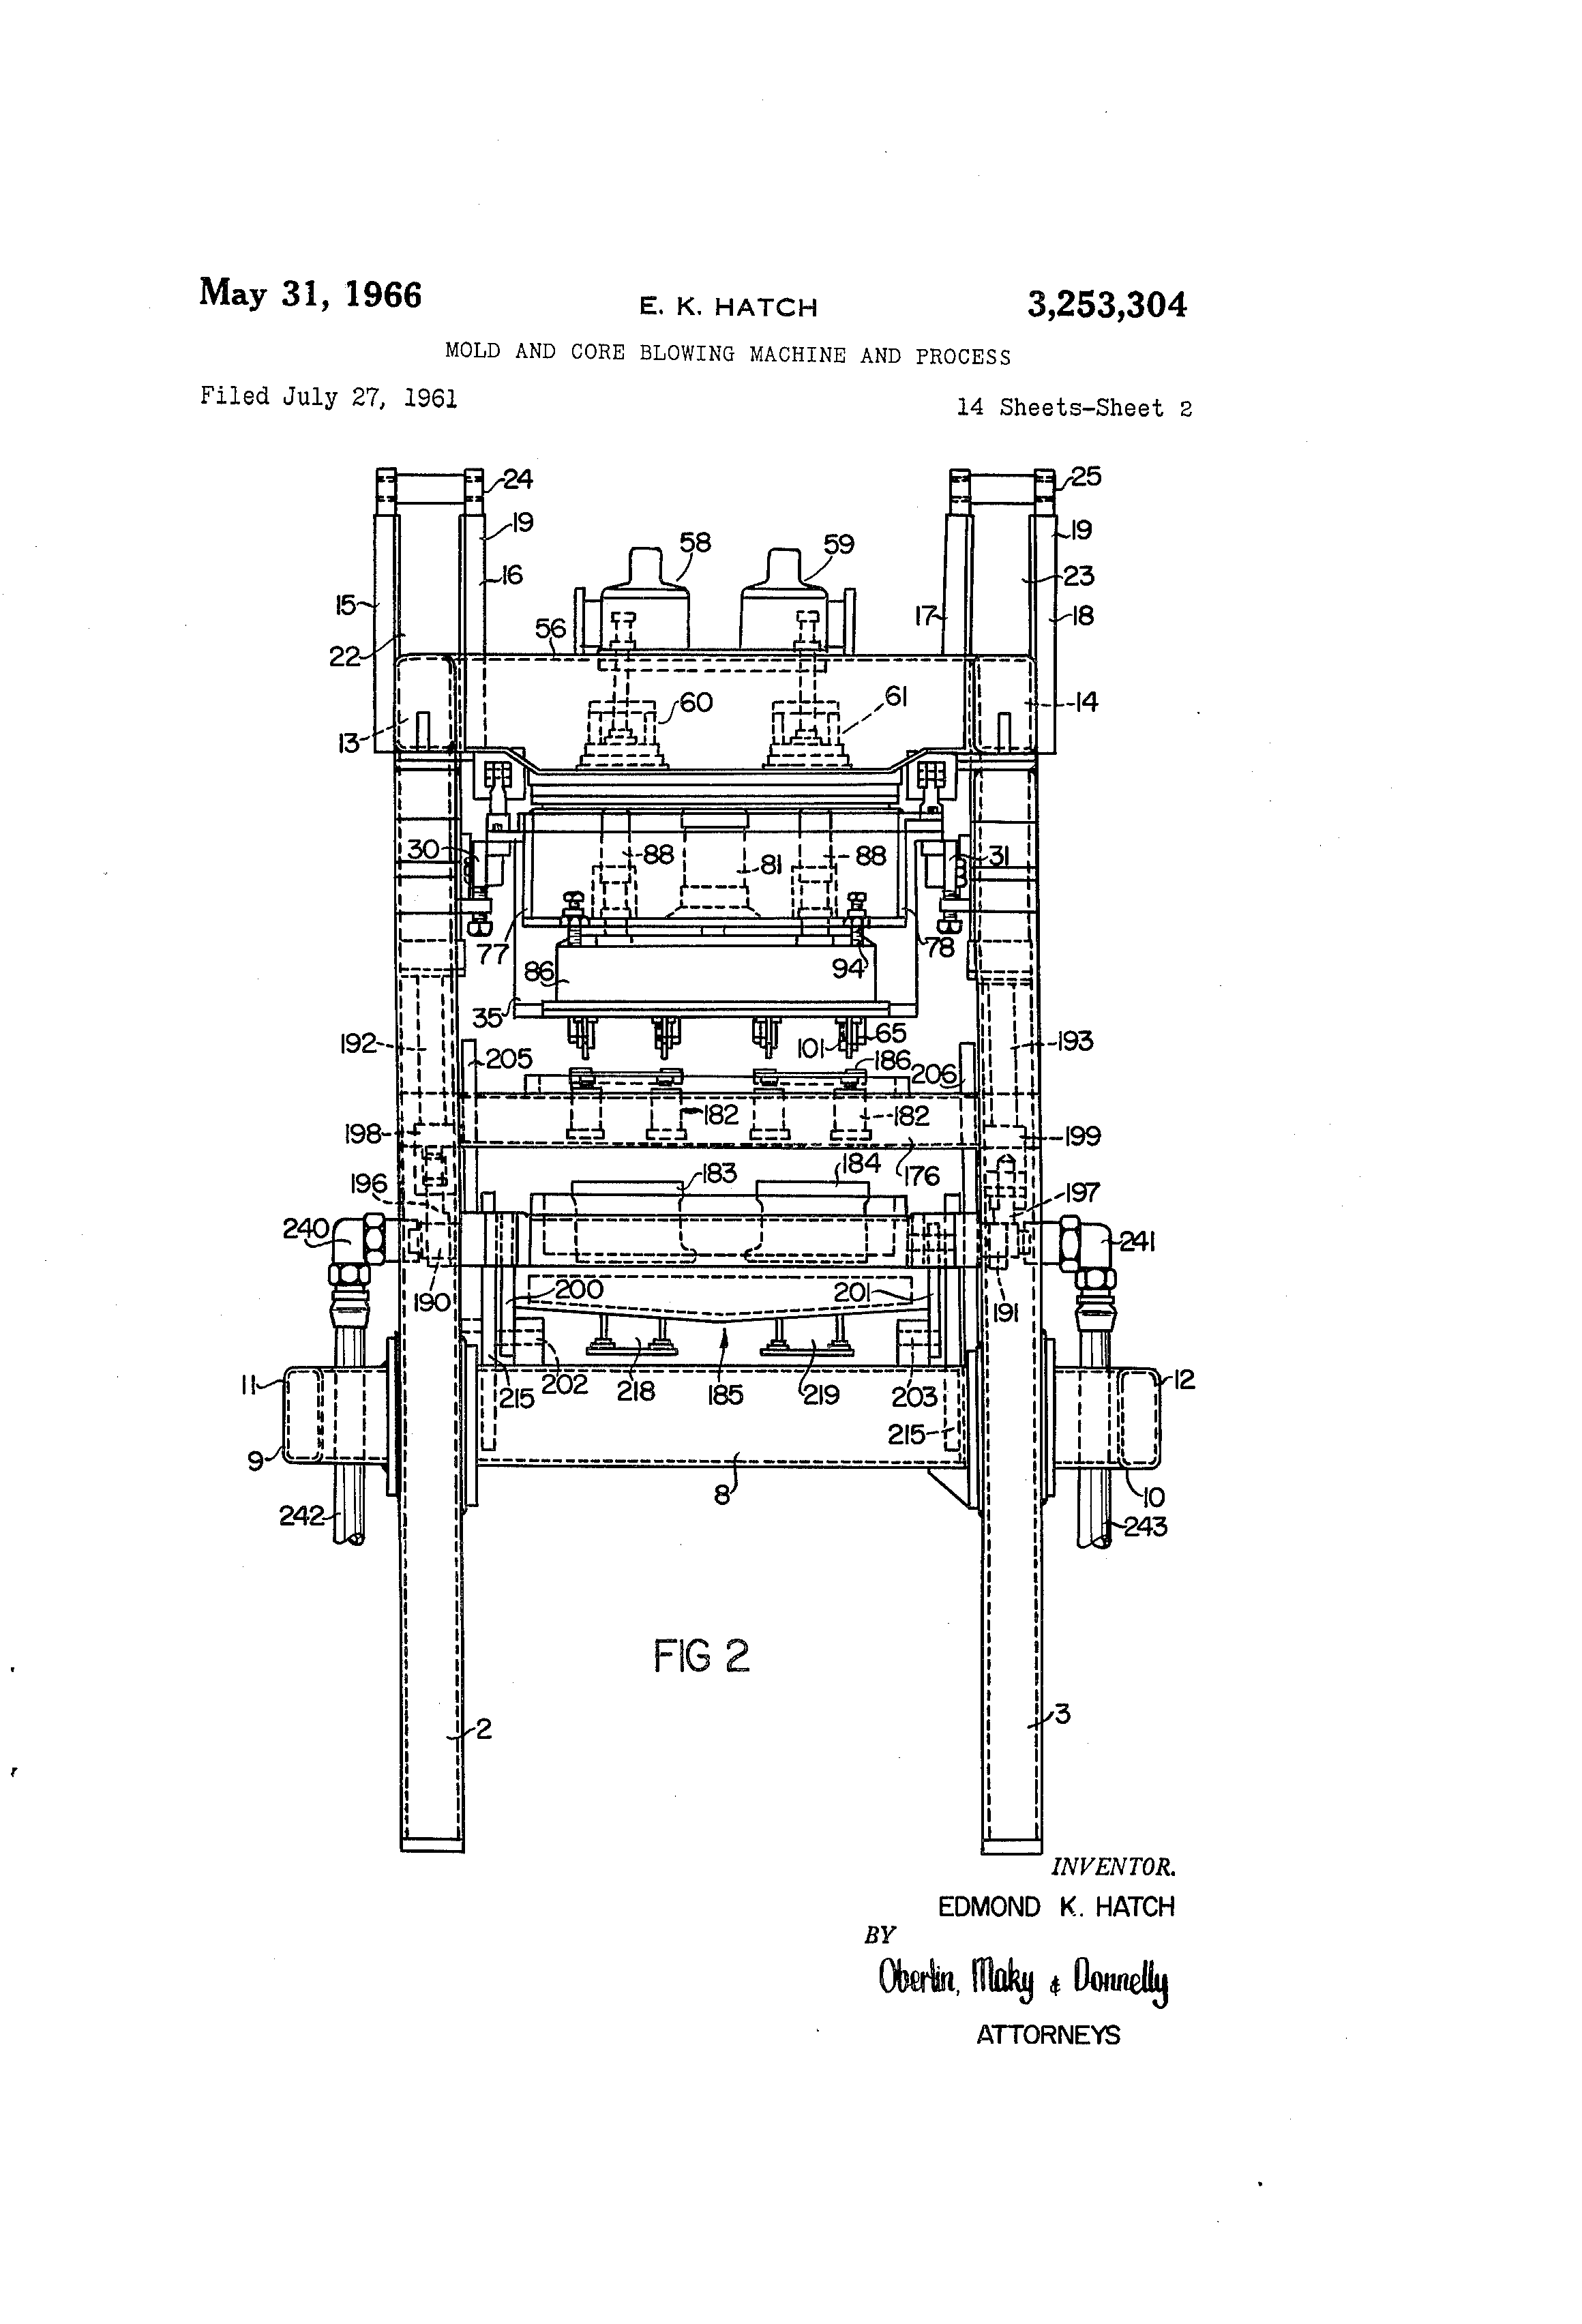 US3253304 1 patent us3253304 mold and core blowing machine and process  at cos-gaming.co